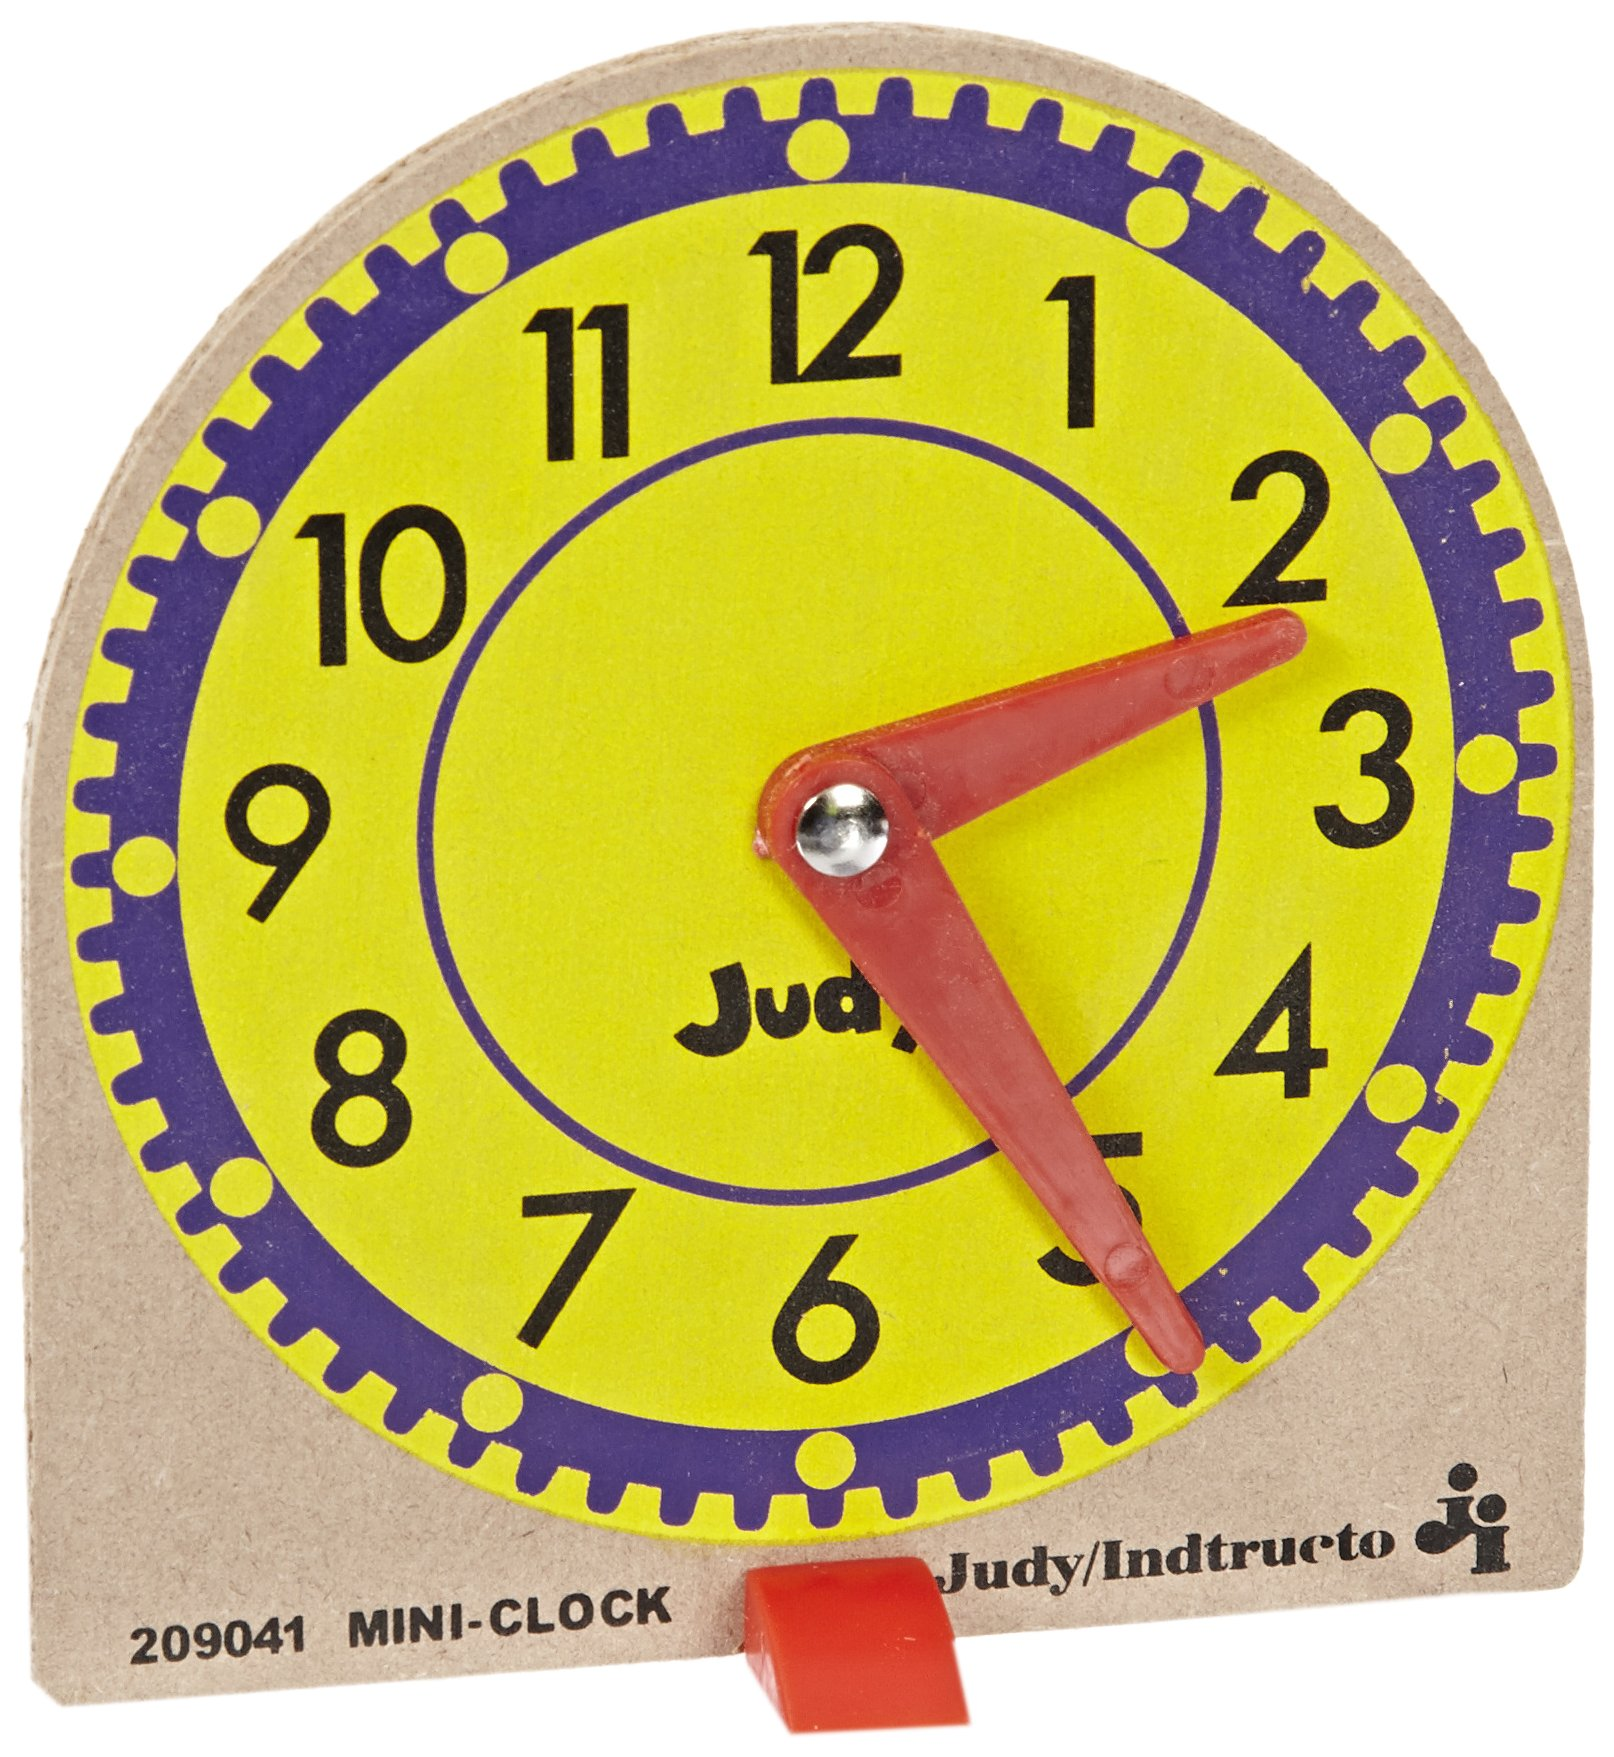 Judy Instructo Mini-Clocks - 4 1/8 x 4 inches - Set of 12, Size 6